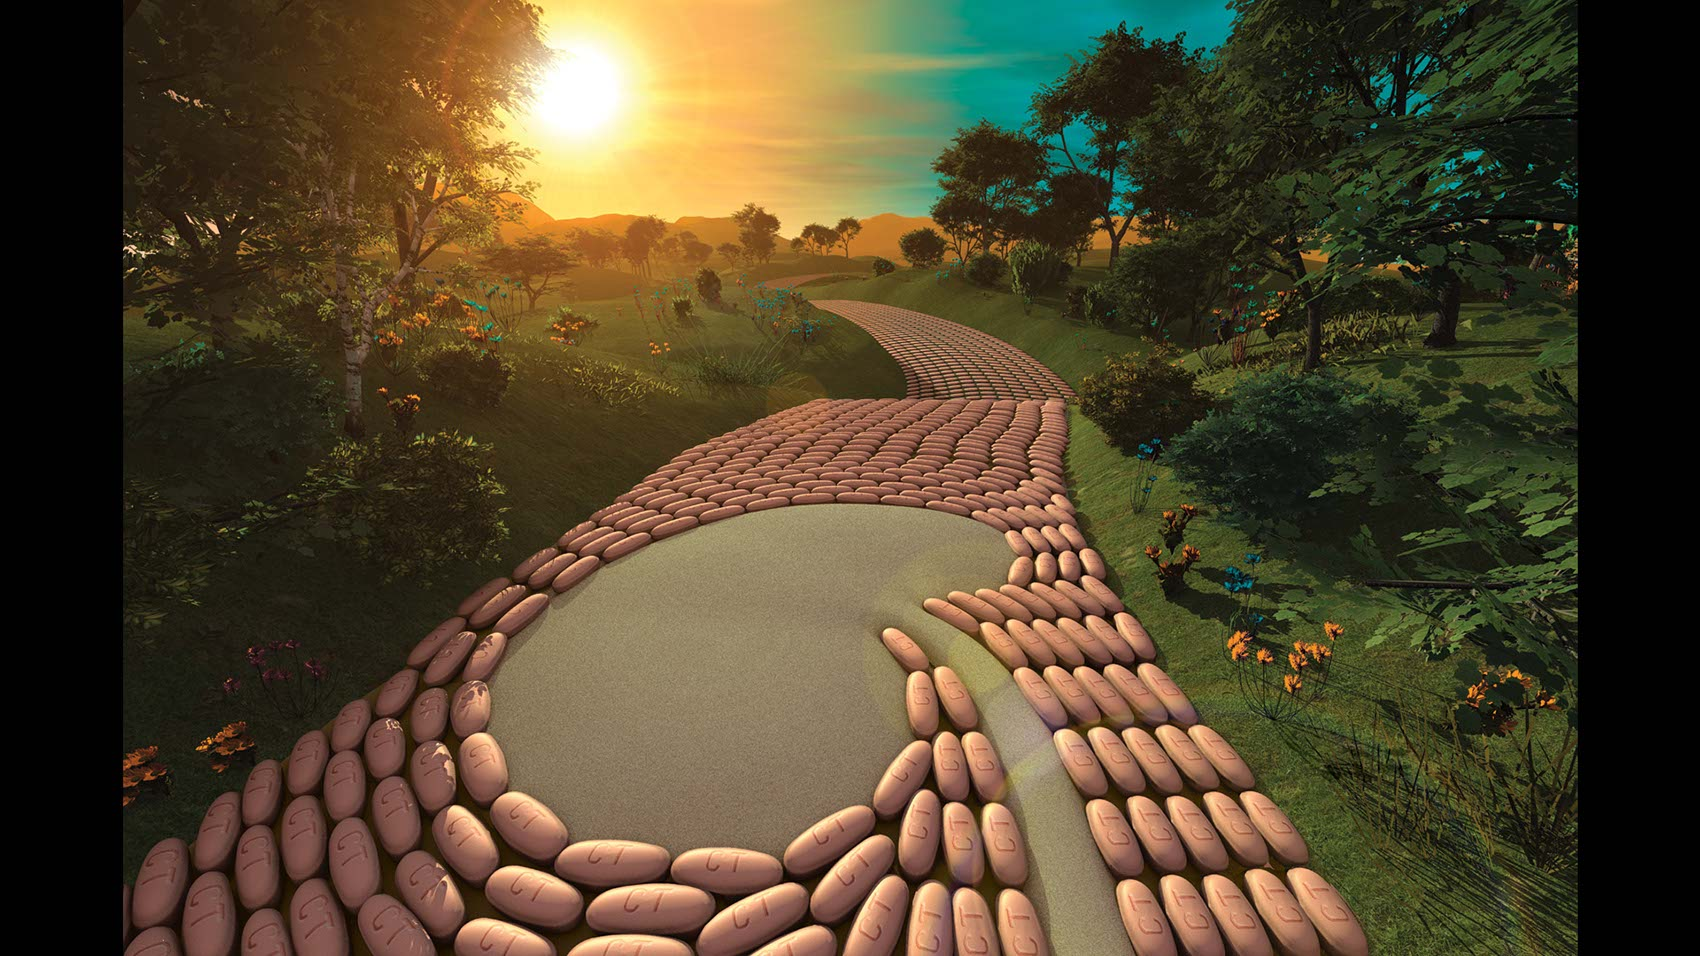 Pills forming Bricks on Road To Recovery-CGI